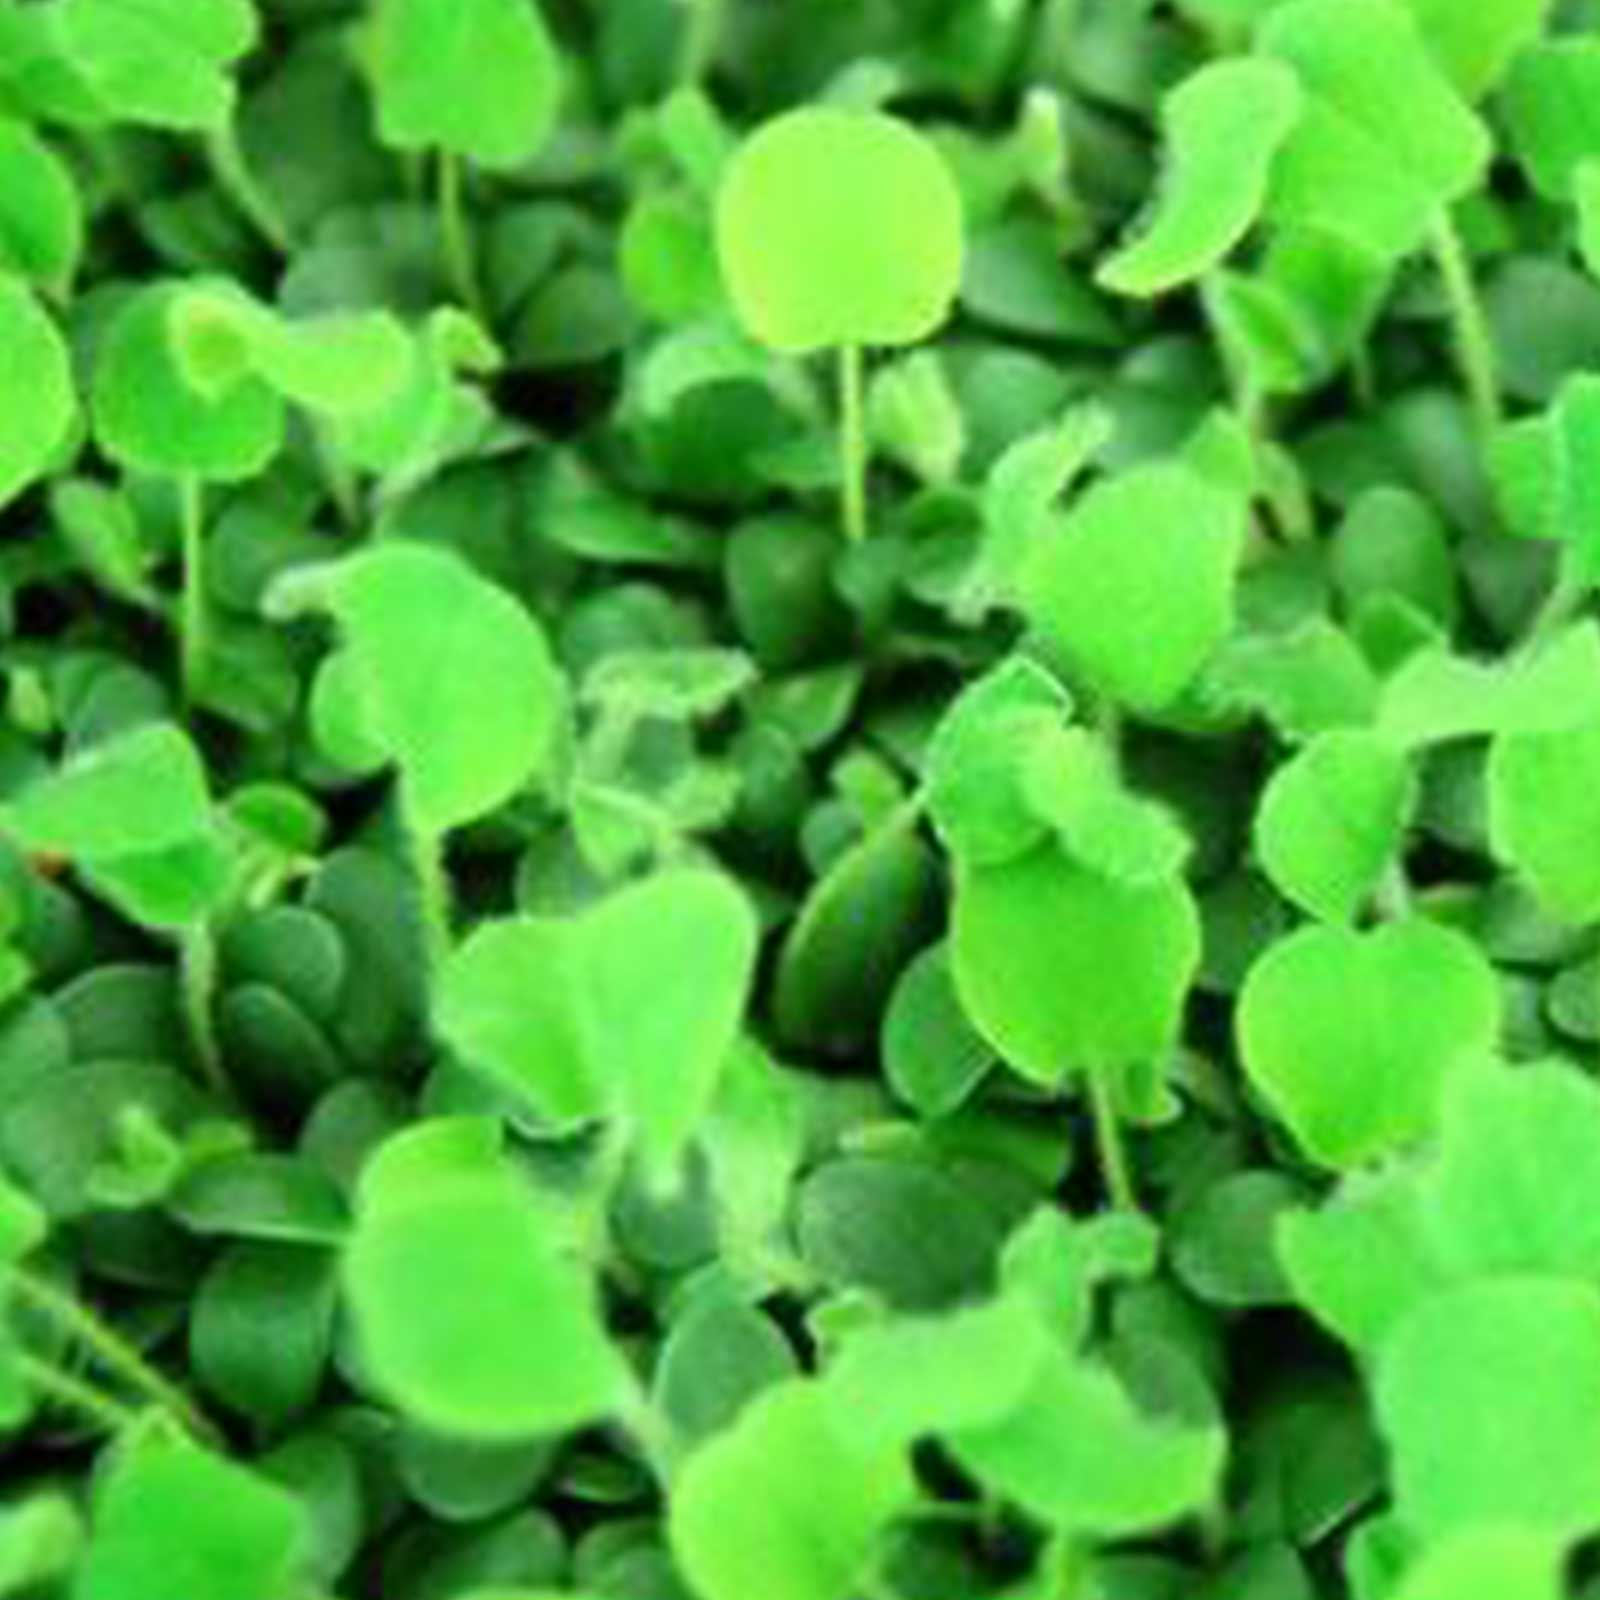 Red Clover Seeds: 4 Oz - Non-GMO Sprouting Seeds for Growing Microgreens